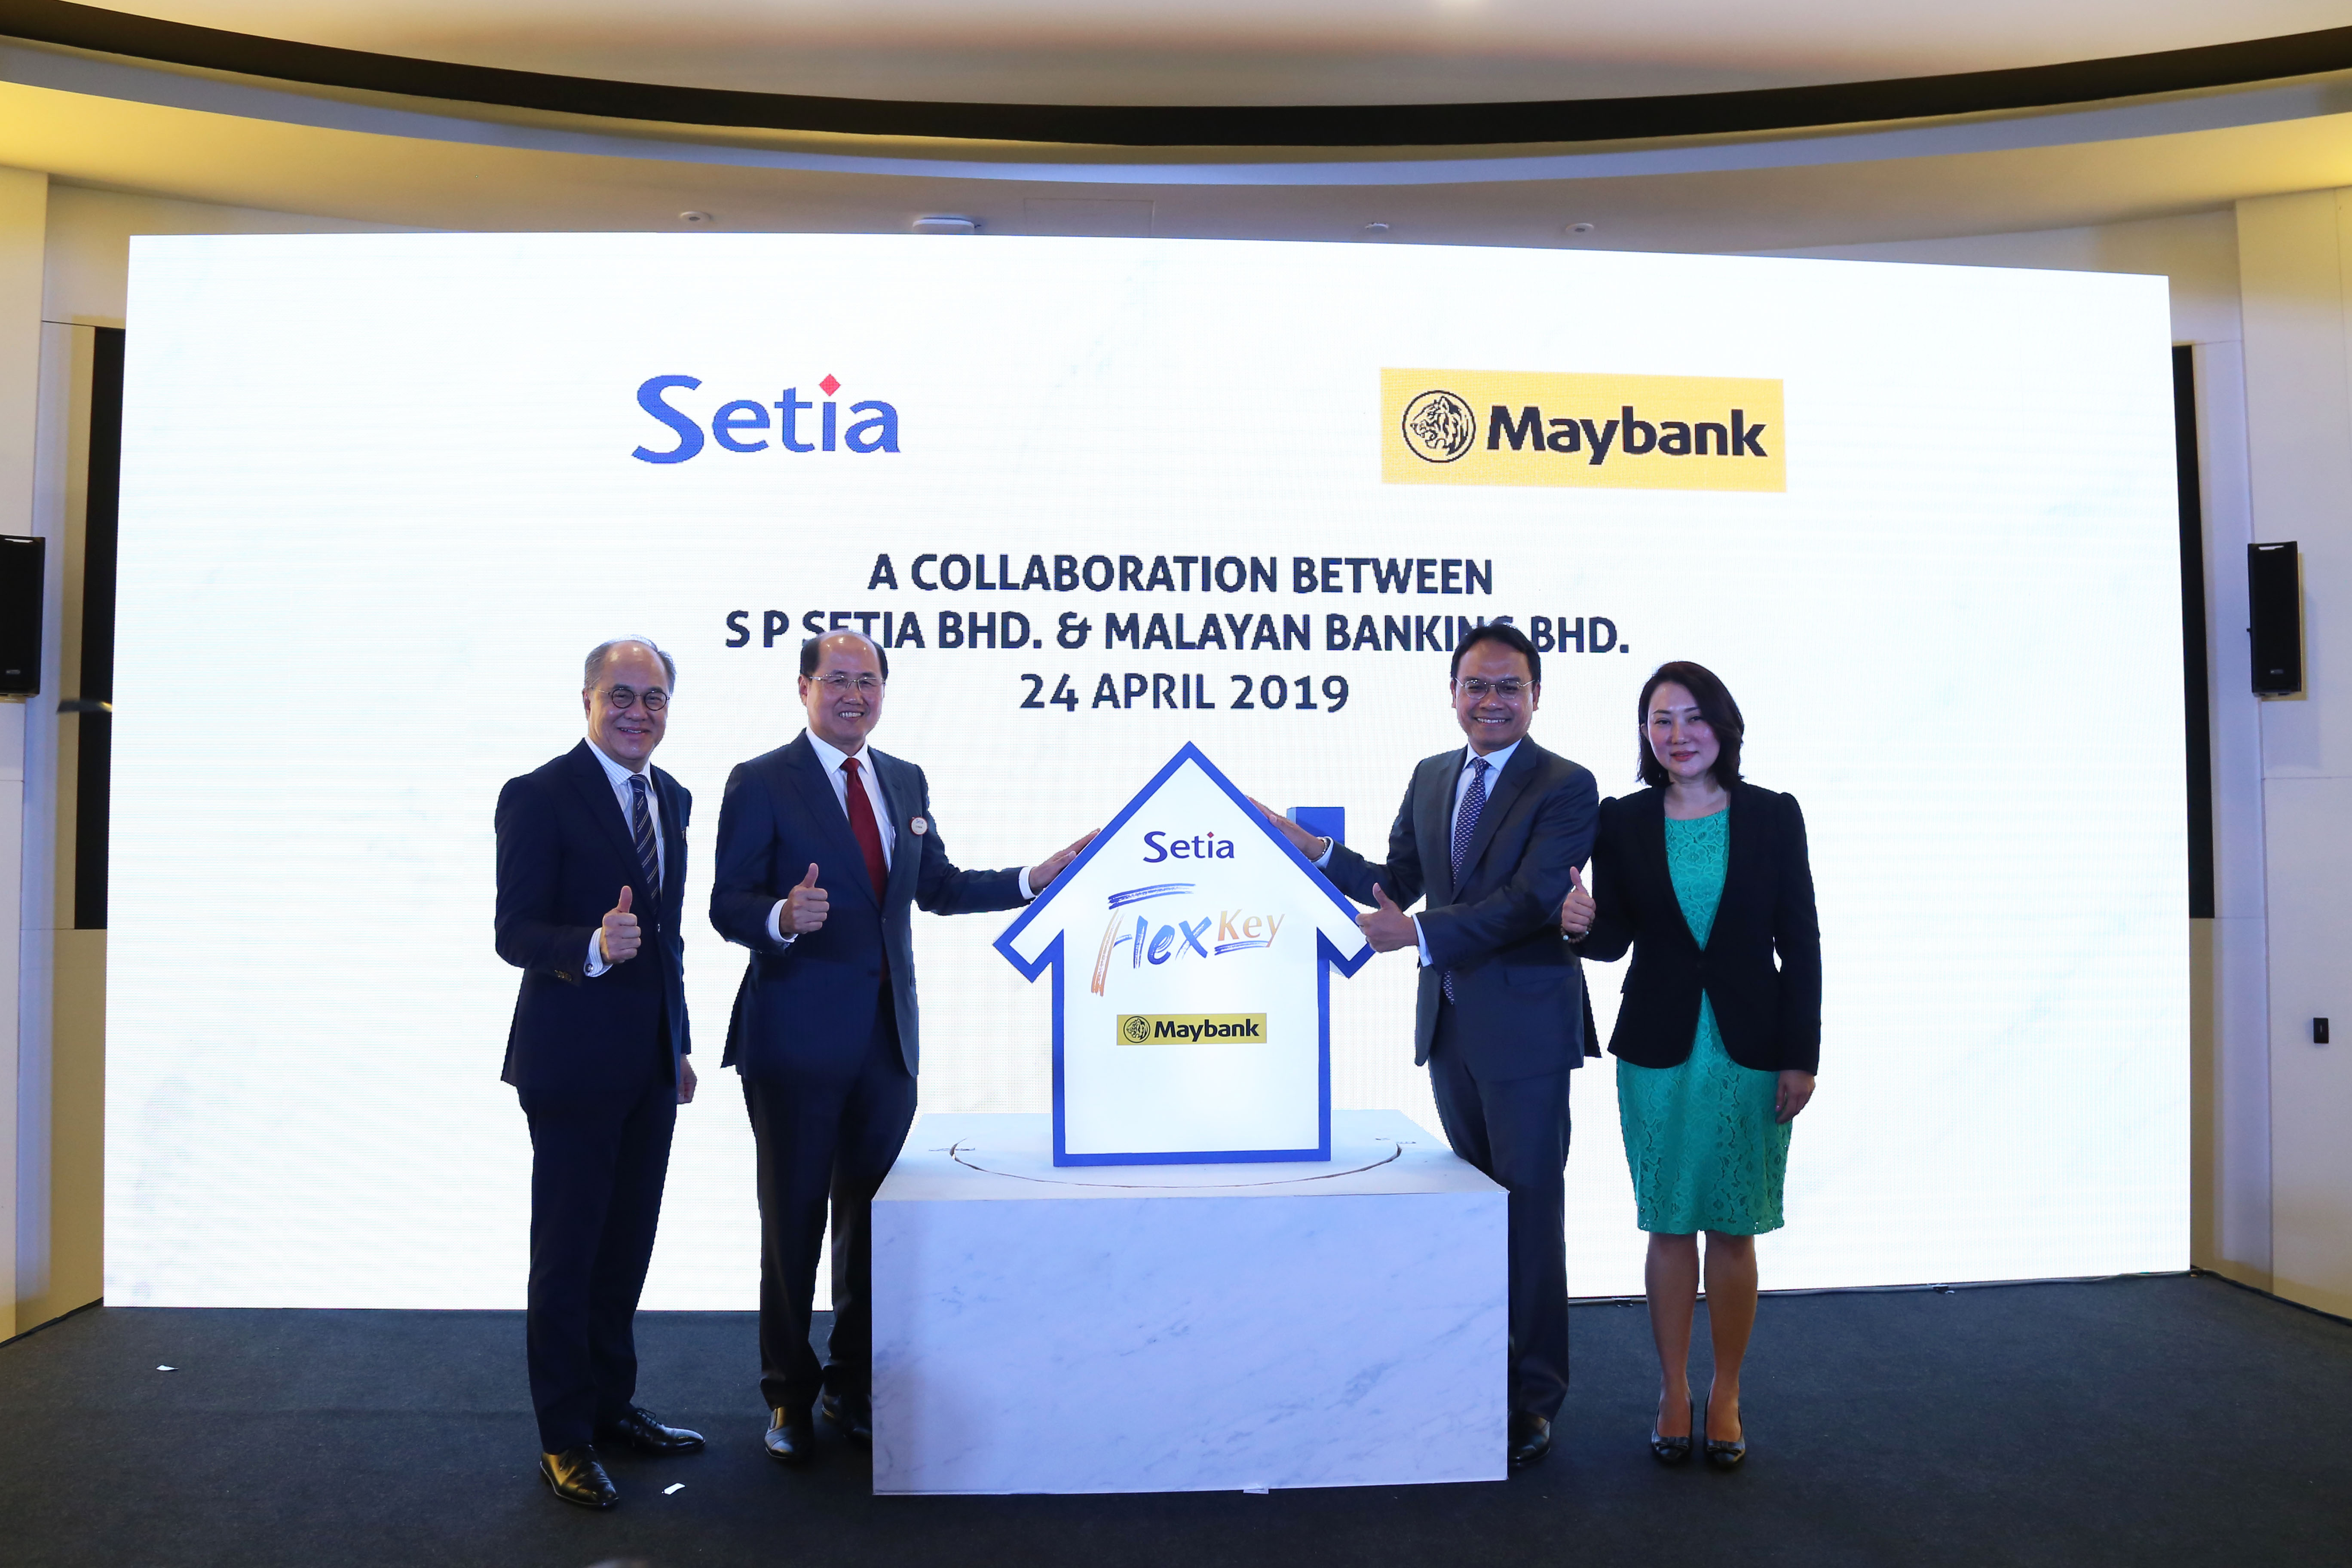 SETIA, FIRST TO OFFER NEWLY-LAUNCHED HOMES UNDER ITS RENT-TO-OWN SCHEME 'FLEXKEY' IN COLLABORATION WITH MAYBANK